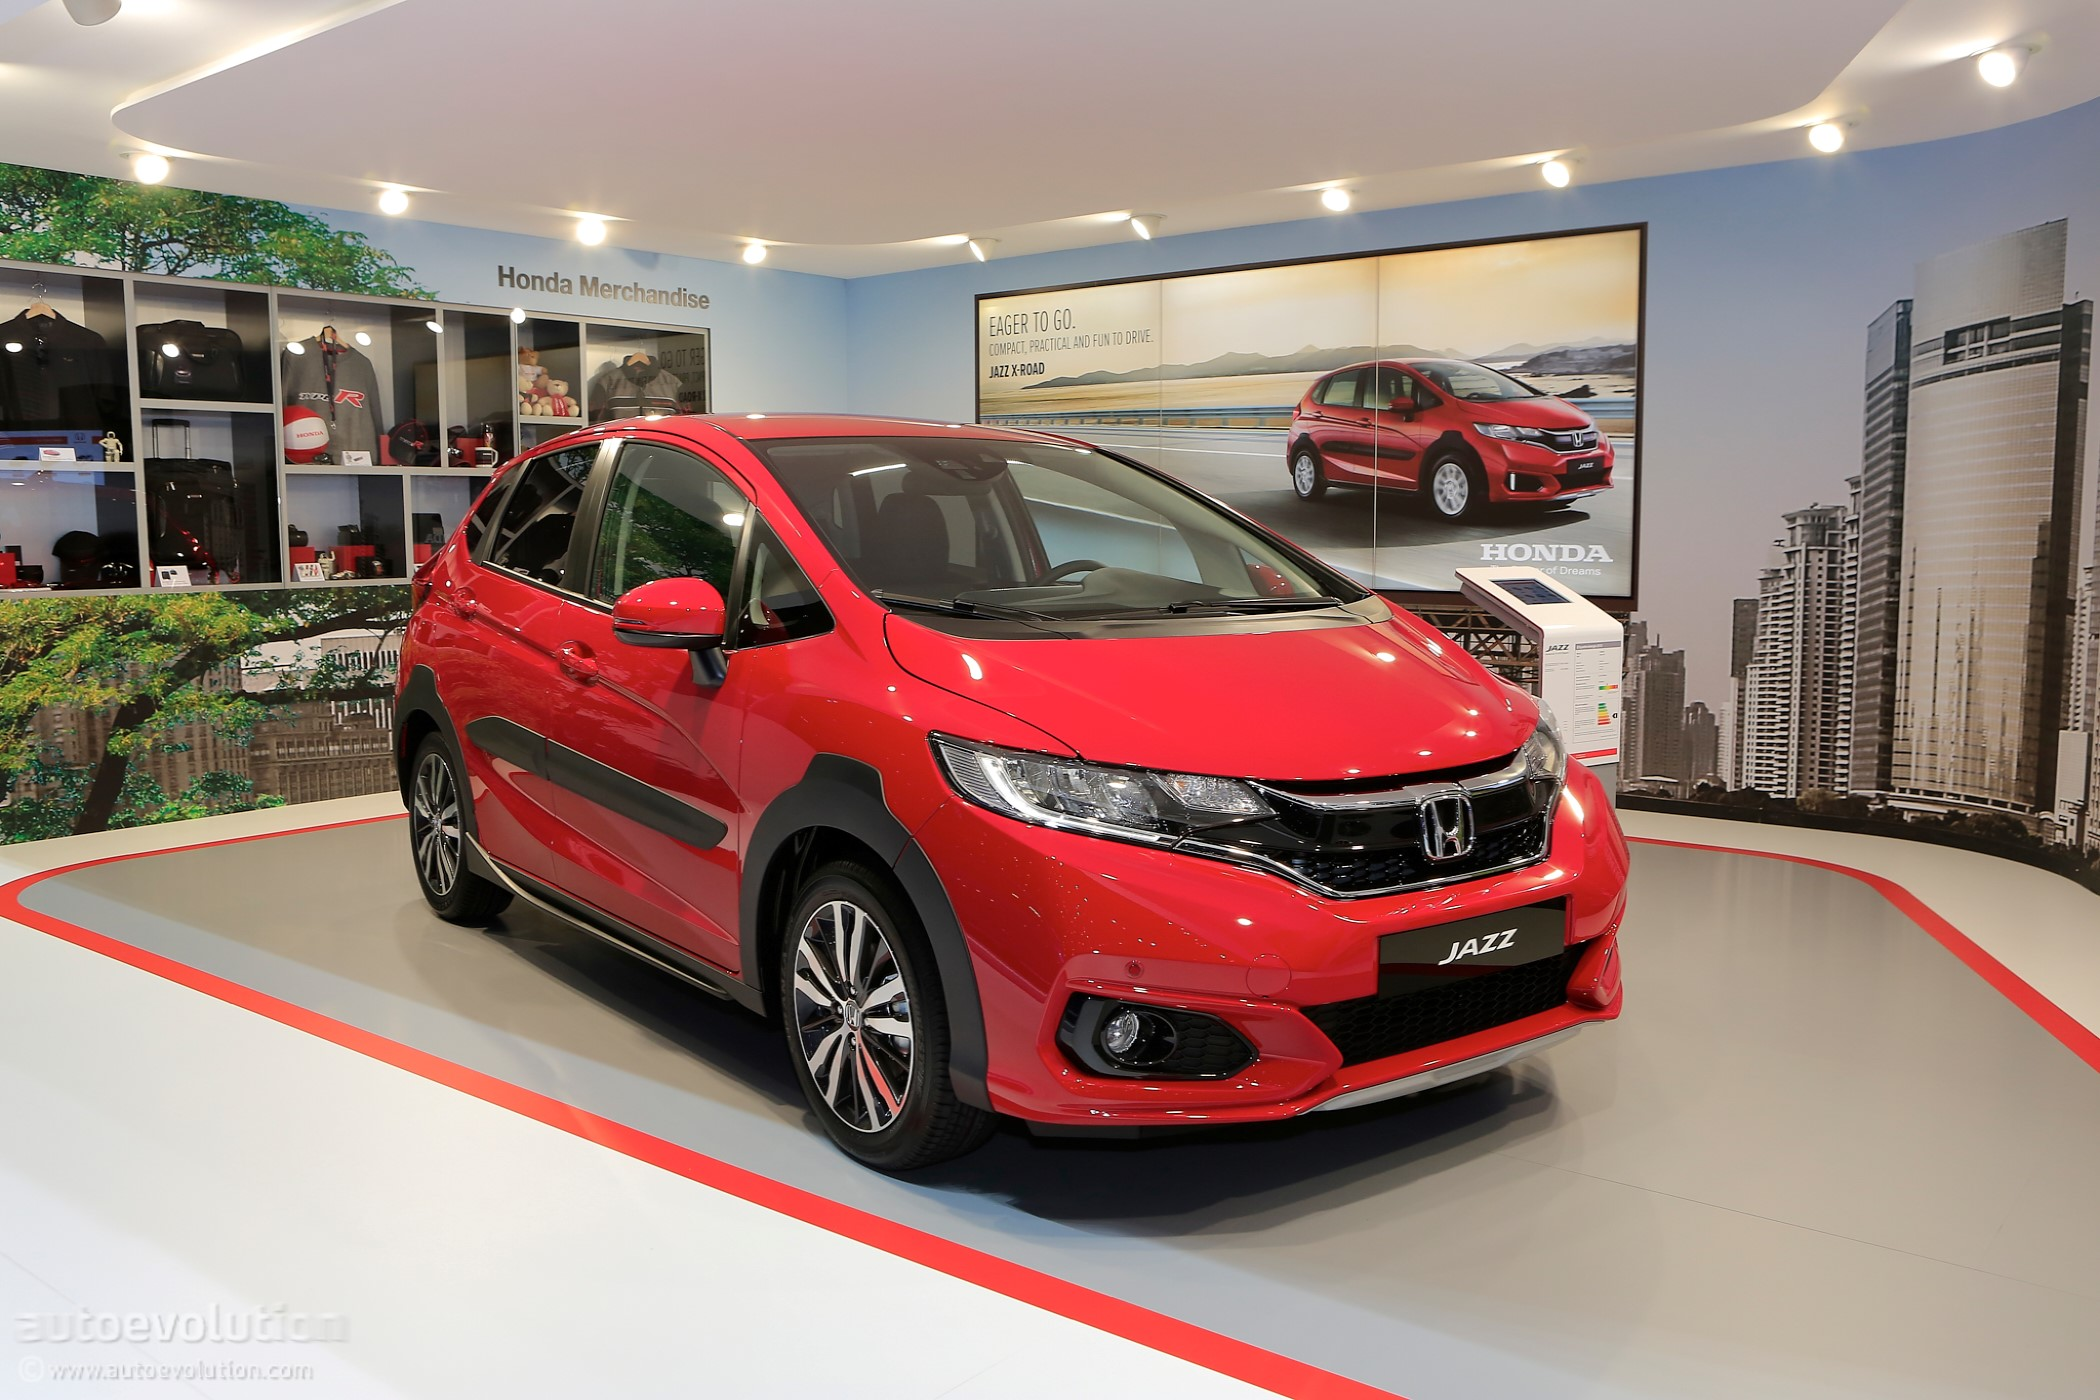 2018 Honda Jazz Gets Its Rather Disappointing X Road Suit On For